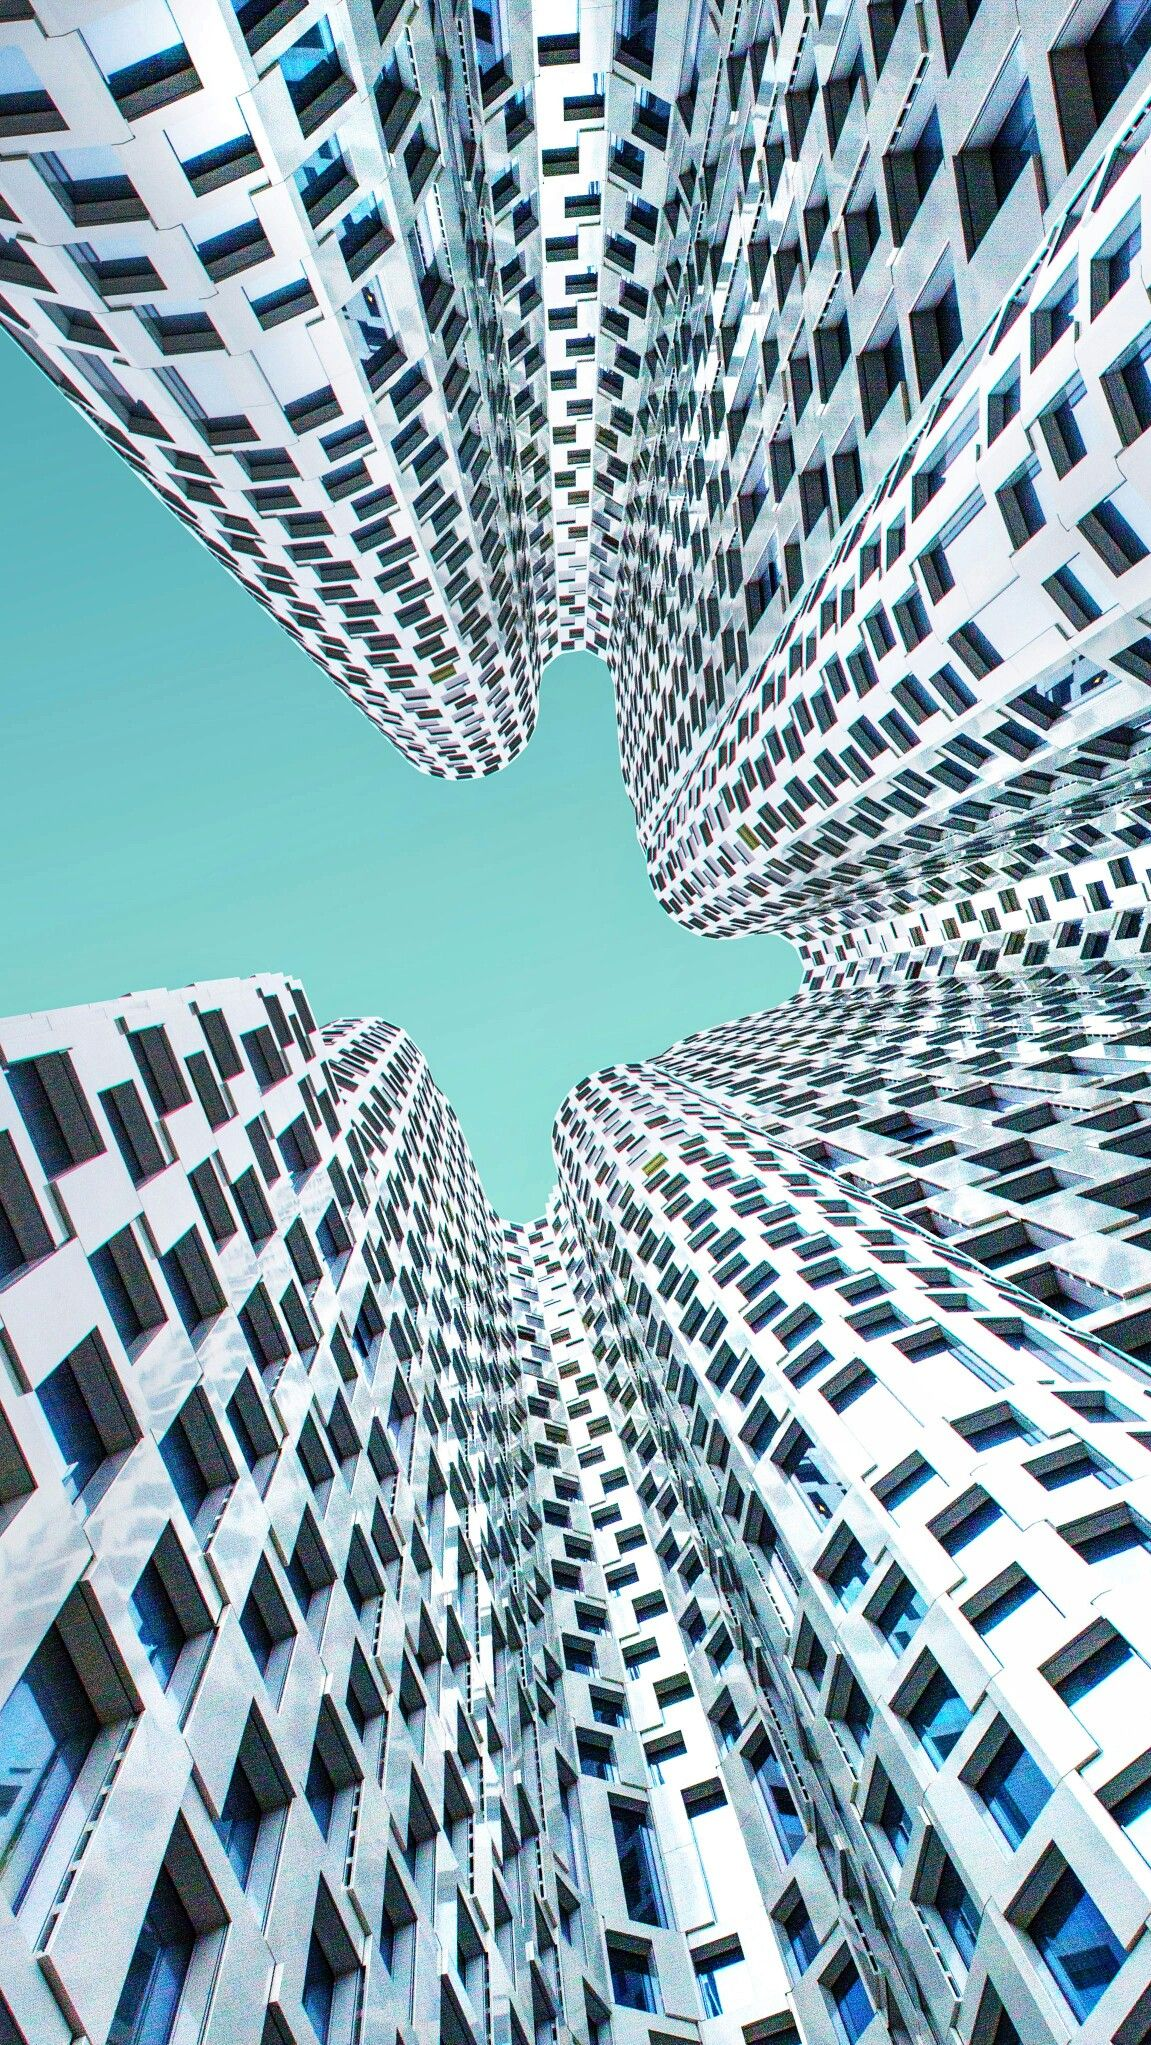 Pin By Iyan Sofyan On Buildings Pictures Architecture Photography Texture Inspiration Skyscraper